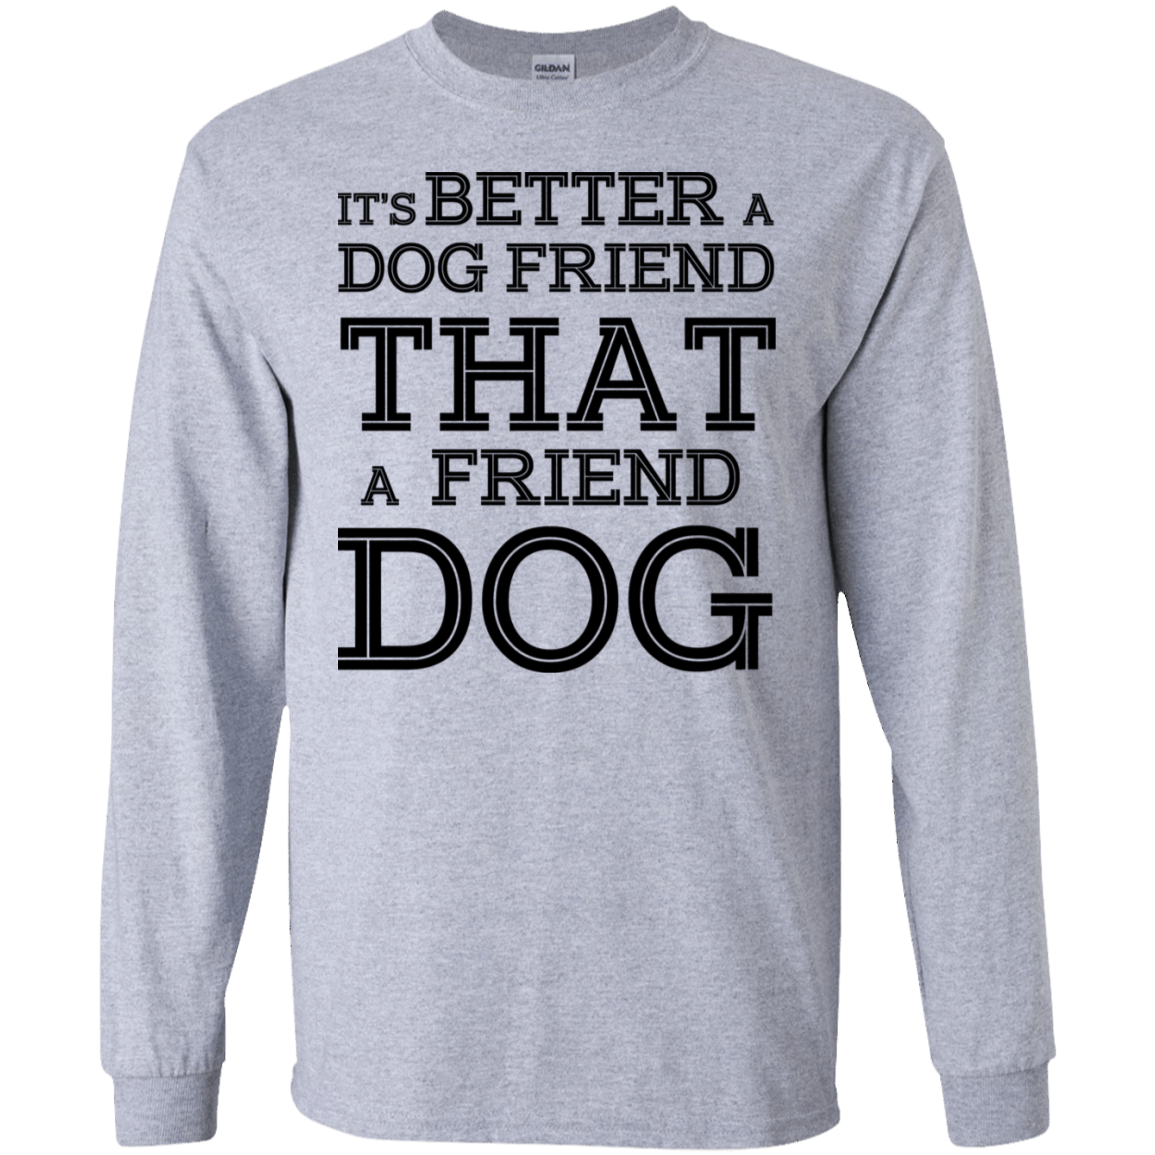 It's Better A Dog Friend That A Friend Dog 30-188-73564856-335 - Tee Ript